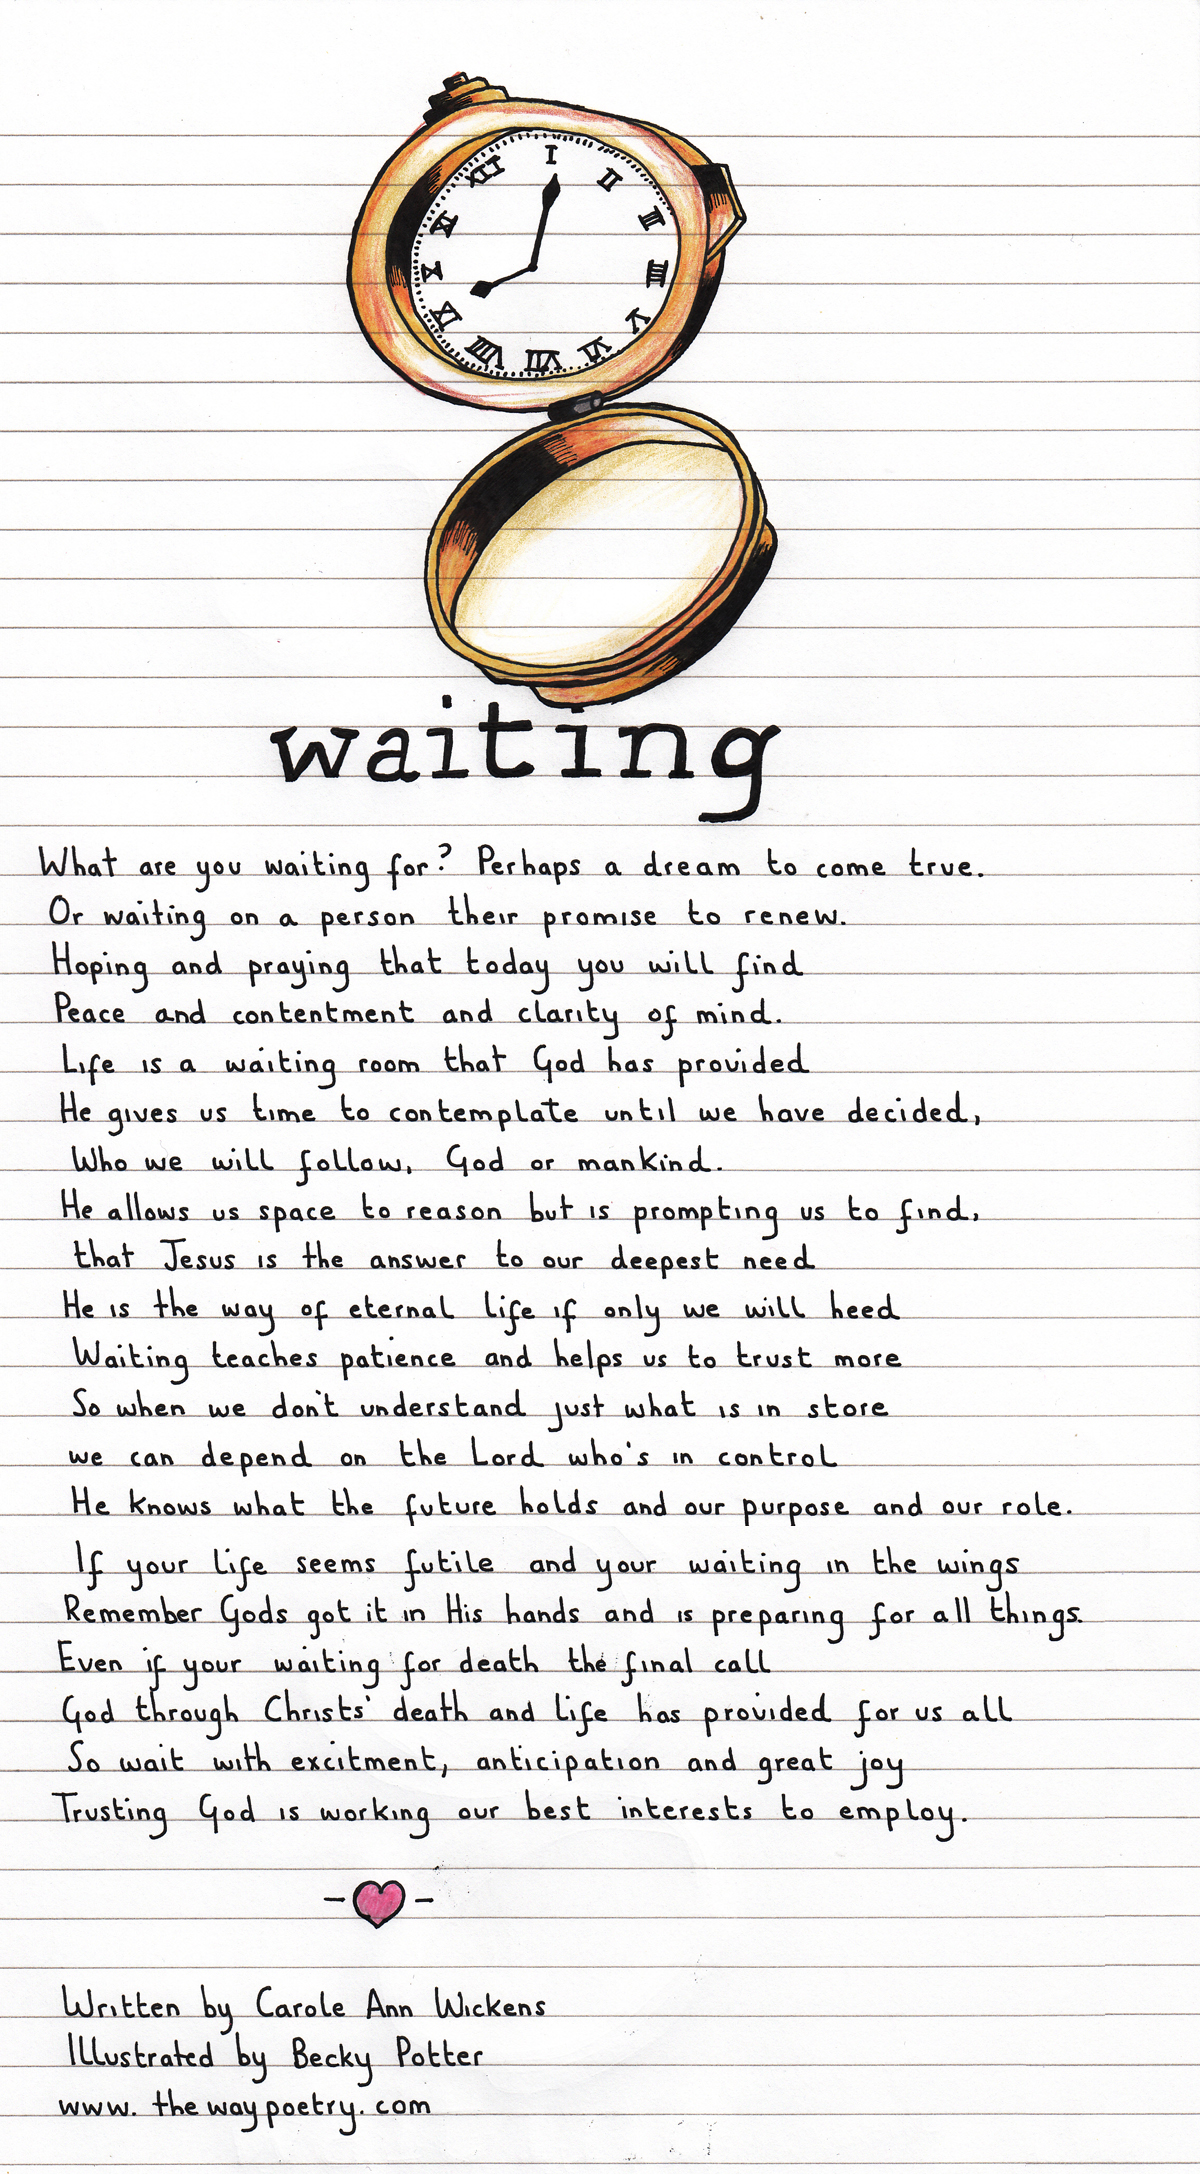 Waiting by Carole Ann Wickens